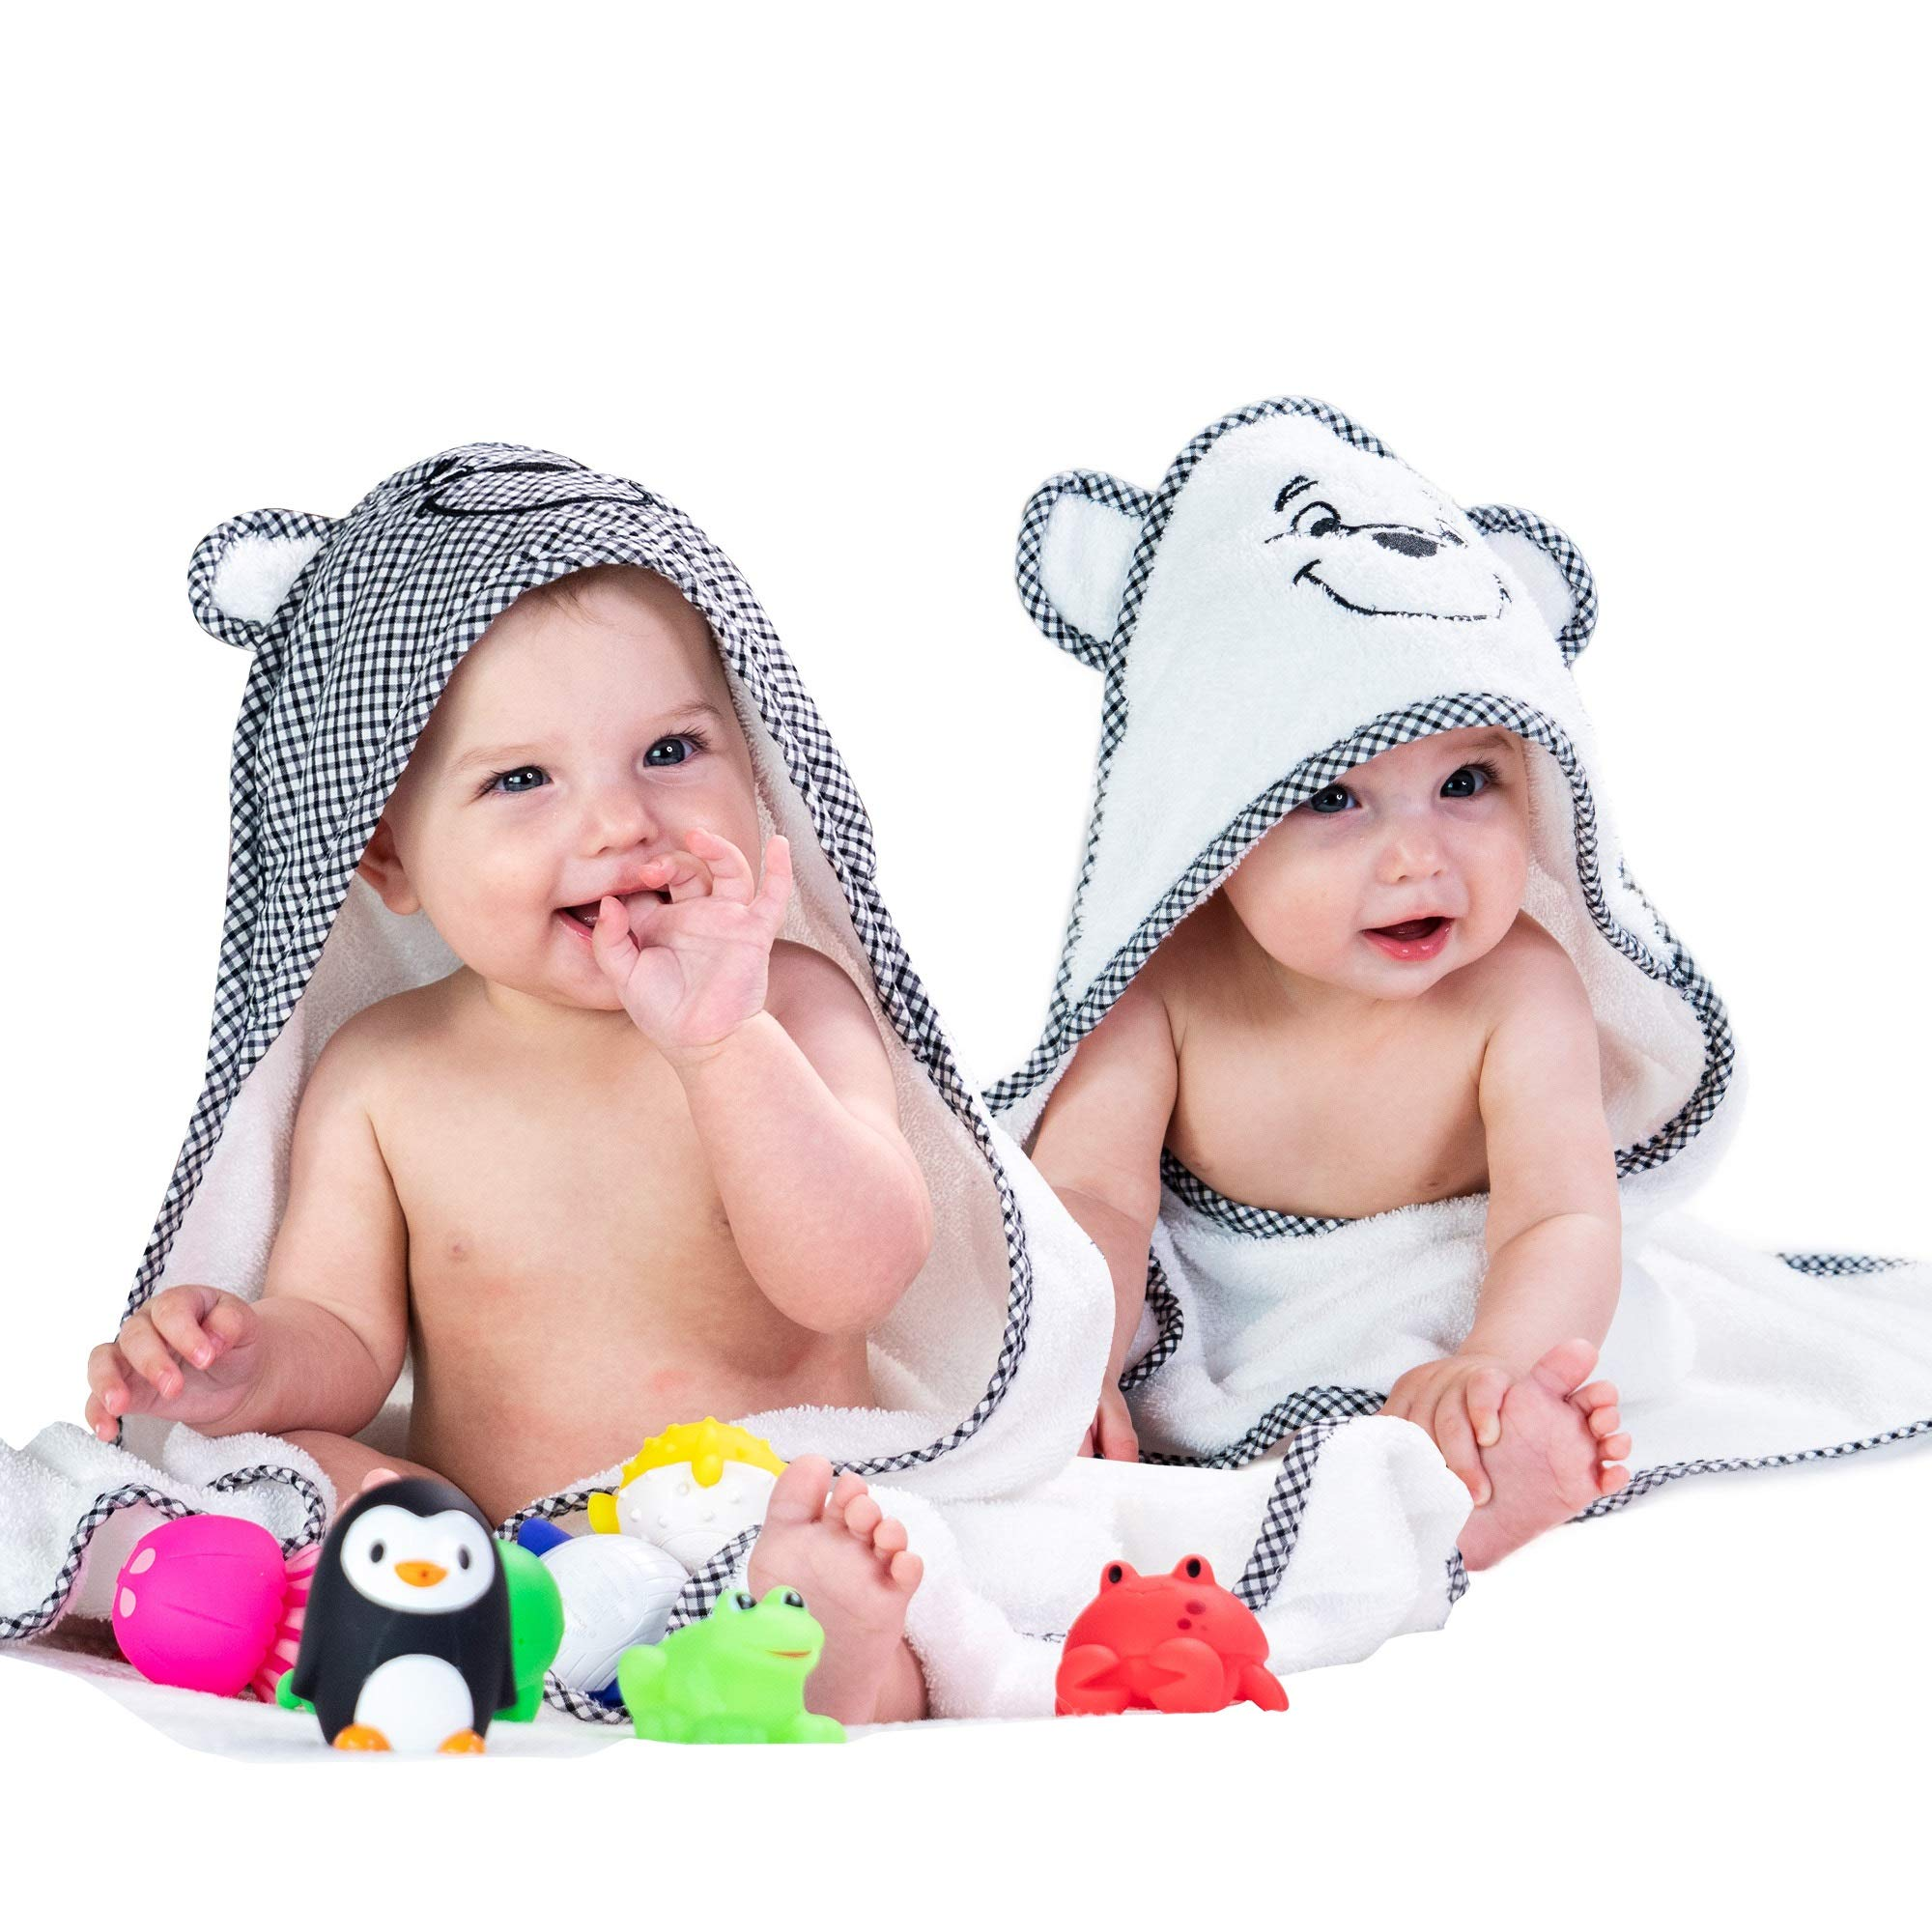 Premium Hooded Baby Towels For Boys & Girls - Soft Cotton Toddler Towel With Hood Set - Hypoalleregnic & Thick - Unisex Infant & Newborn Bath Towels With Hood For Boy Or Girl - Baby Shower Gift 2 Pack by Baby Baby Yes Mama